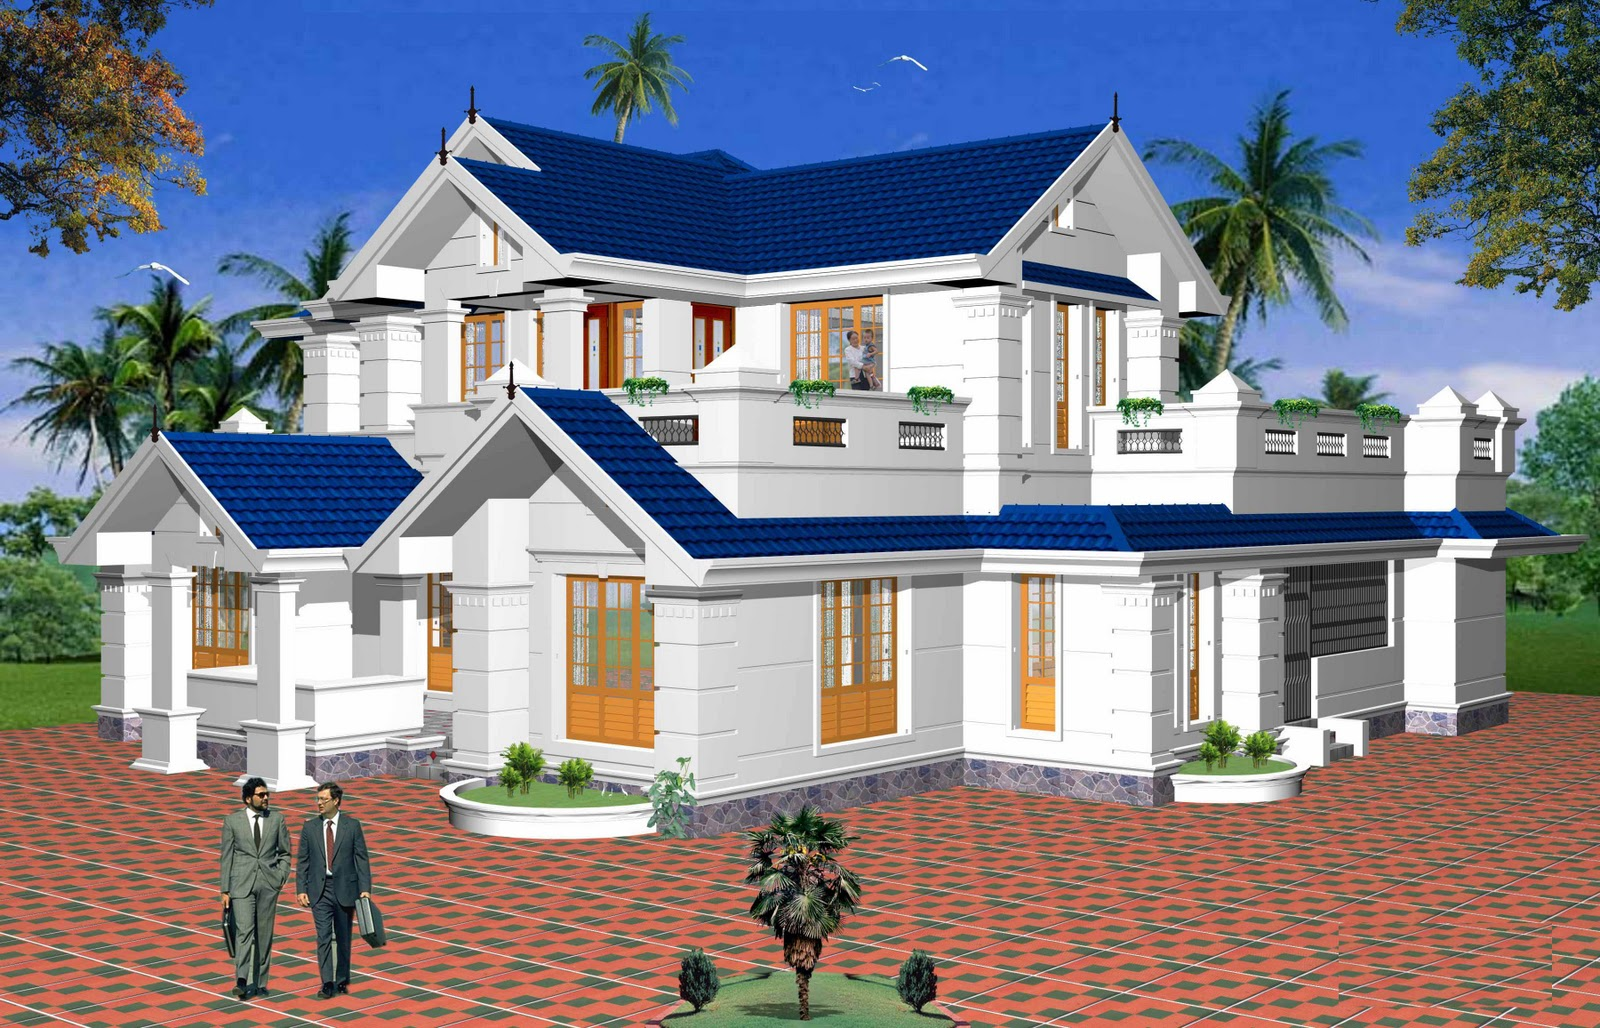 New home designs latest beautiful latest modern home for Latest architectural house designs